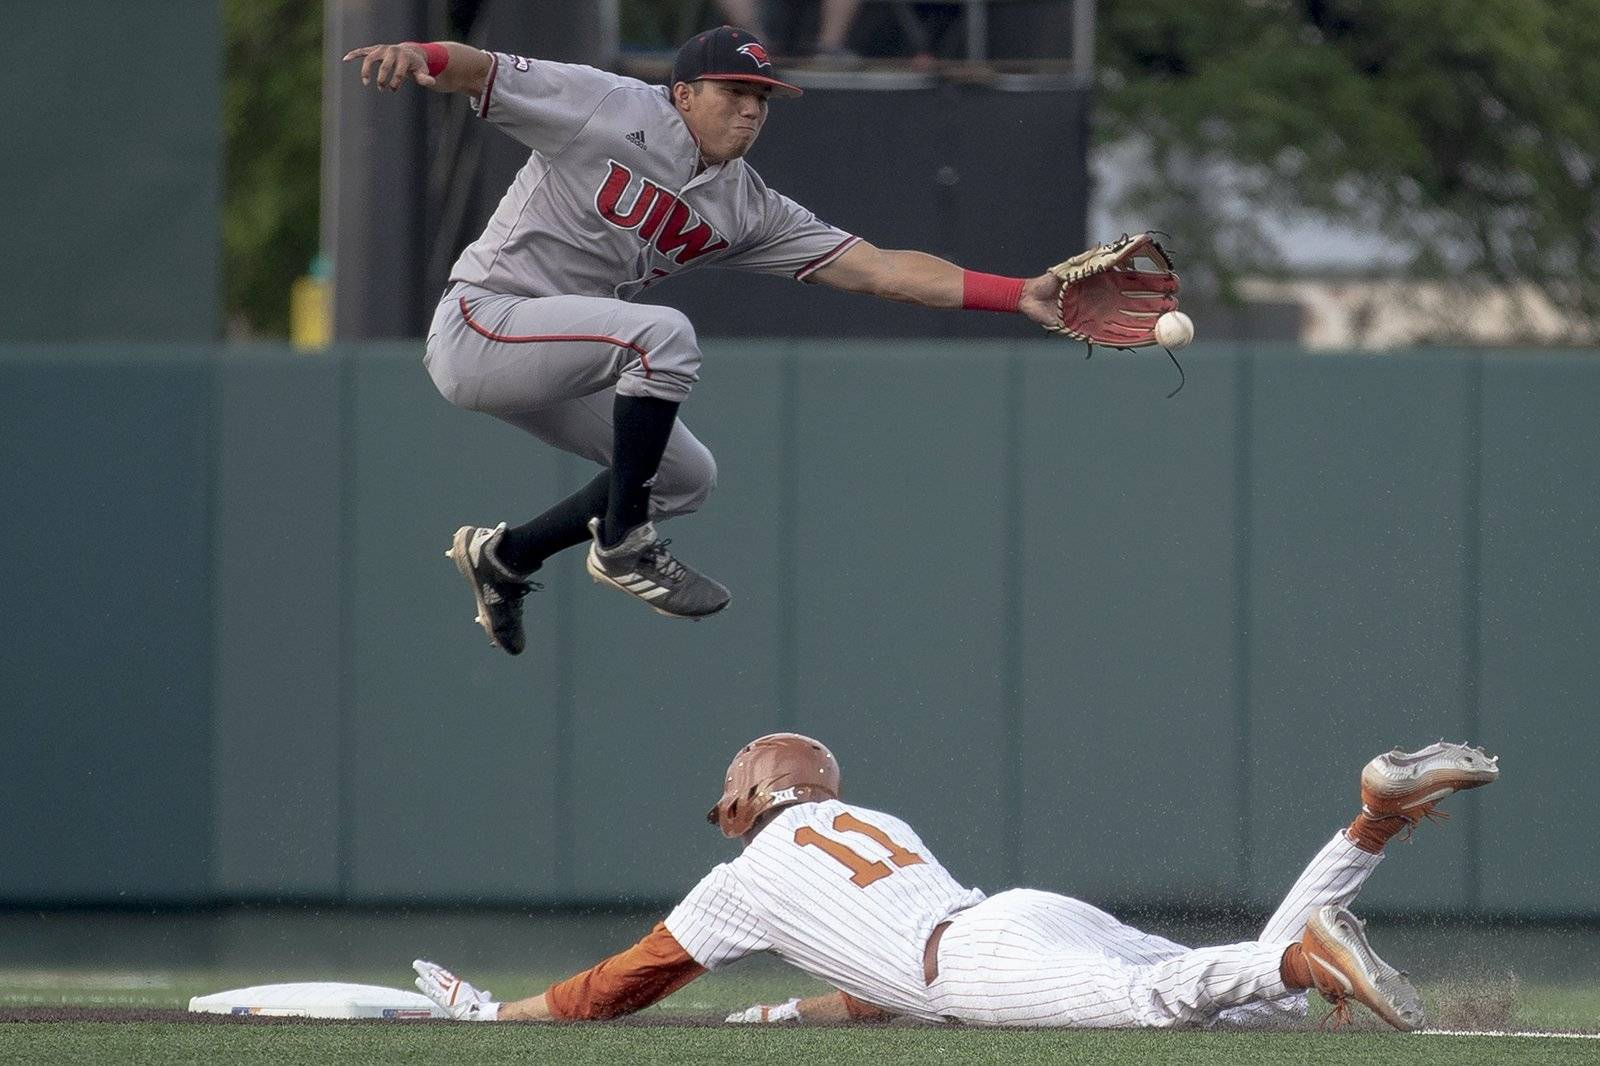 Summer sessions: An update on the Longhorns playing in collegiate wood bat leagues